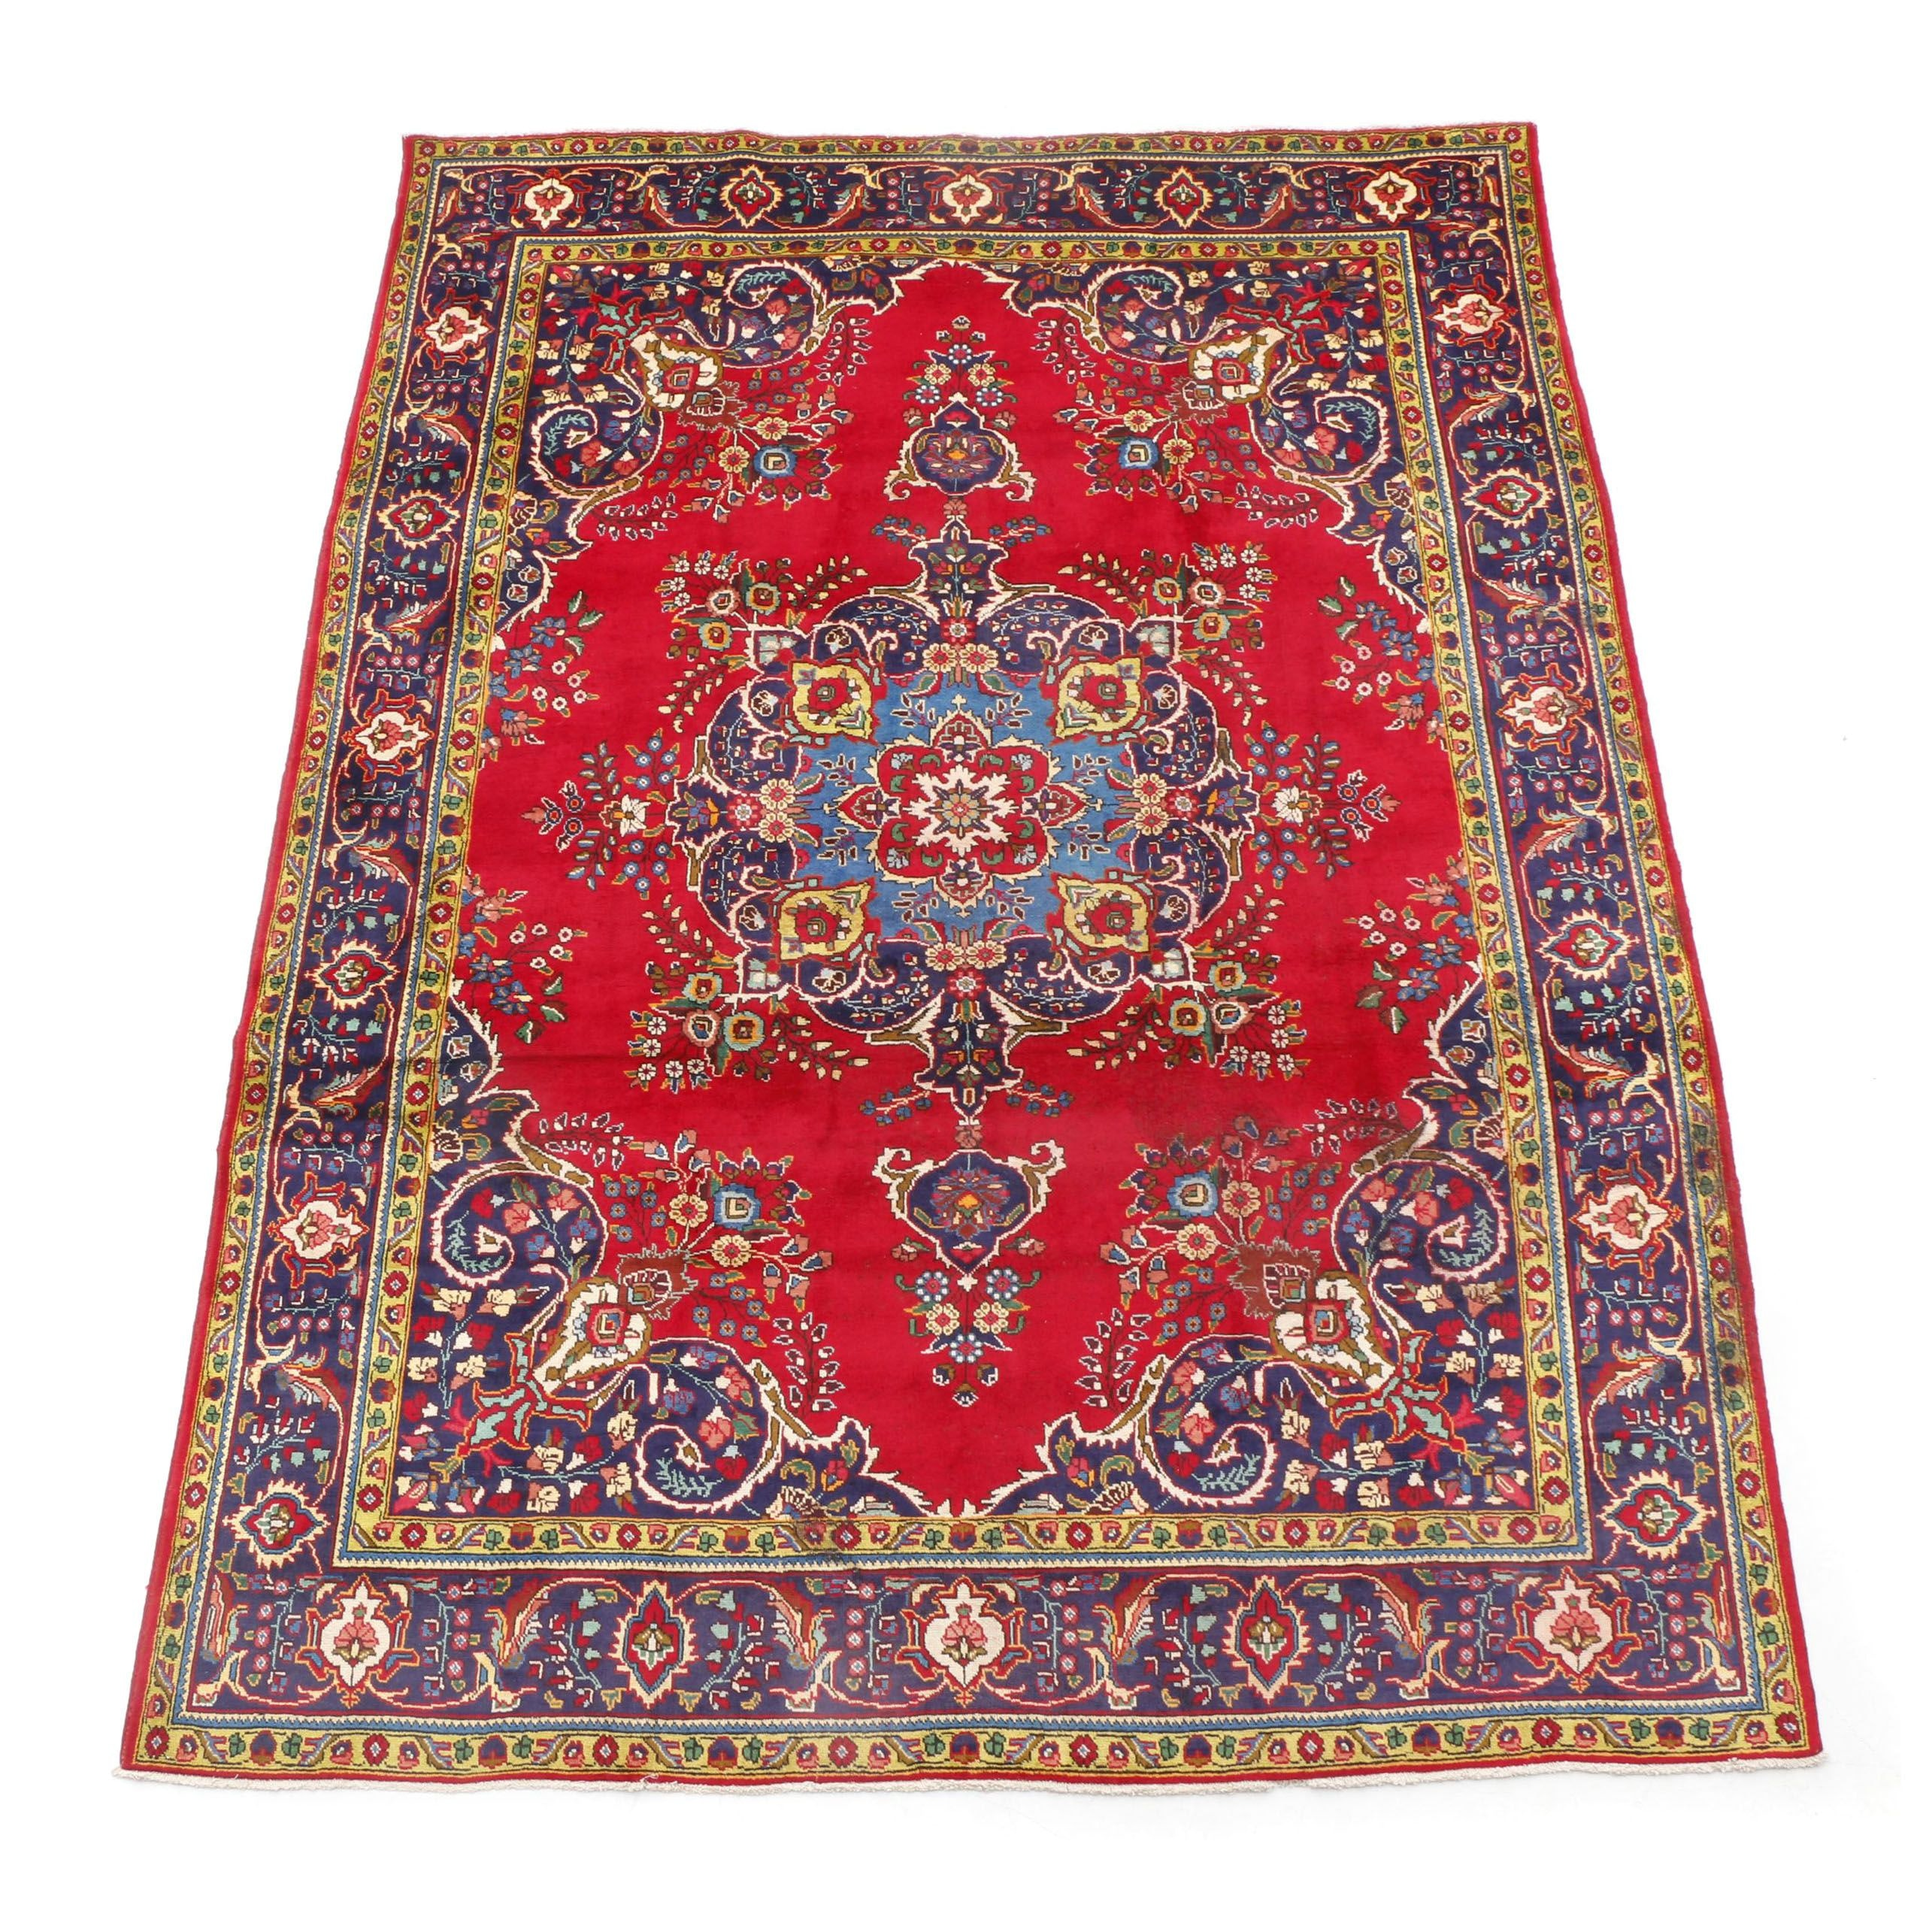 Hand-Knotted Persian Tabriz Room-Sized Rug